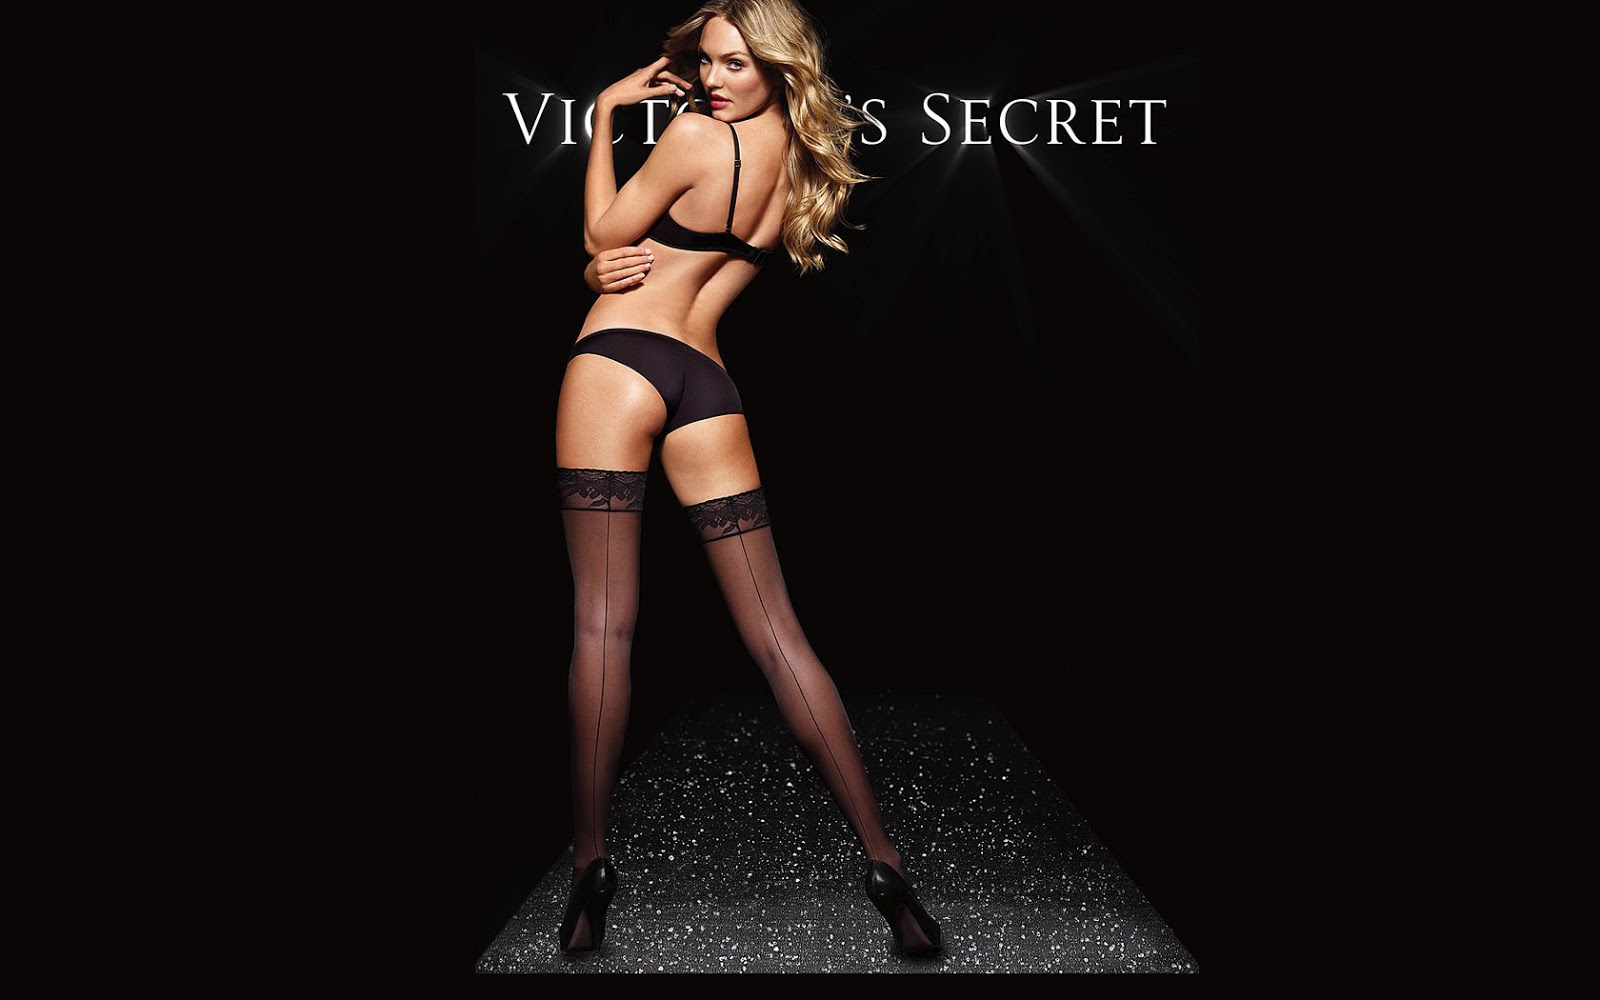 Victorias secret wallpapers voltagebd Image collections